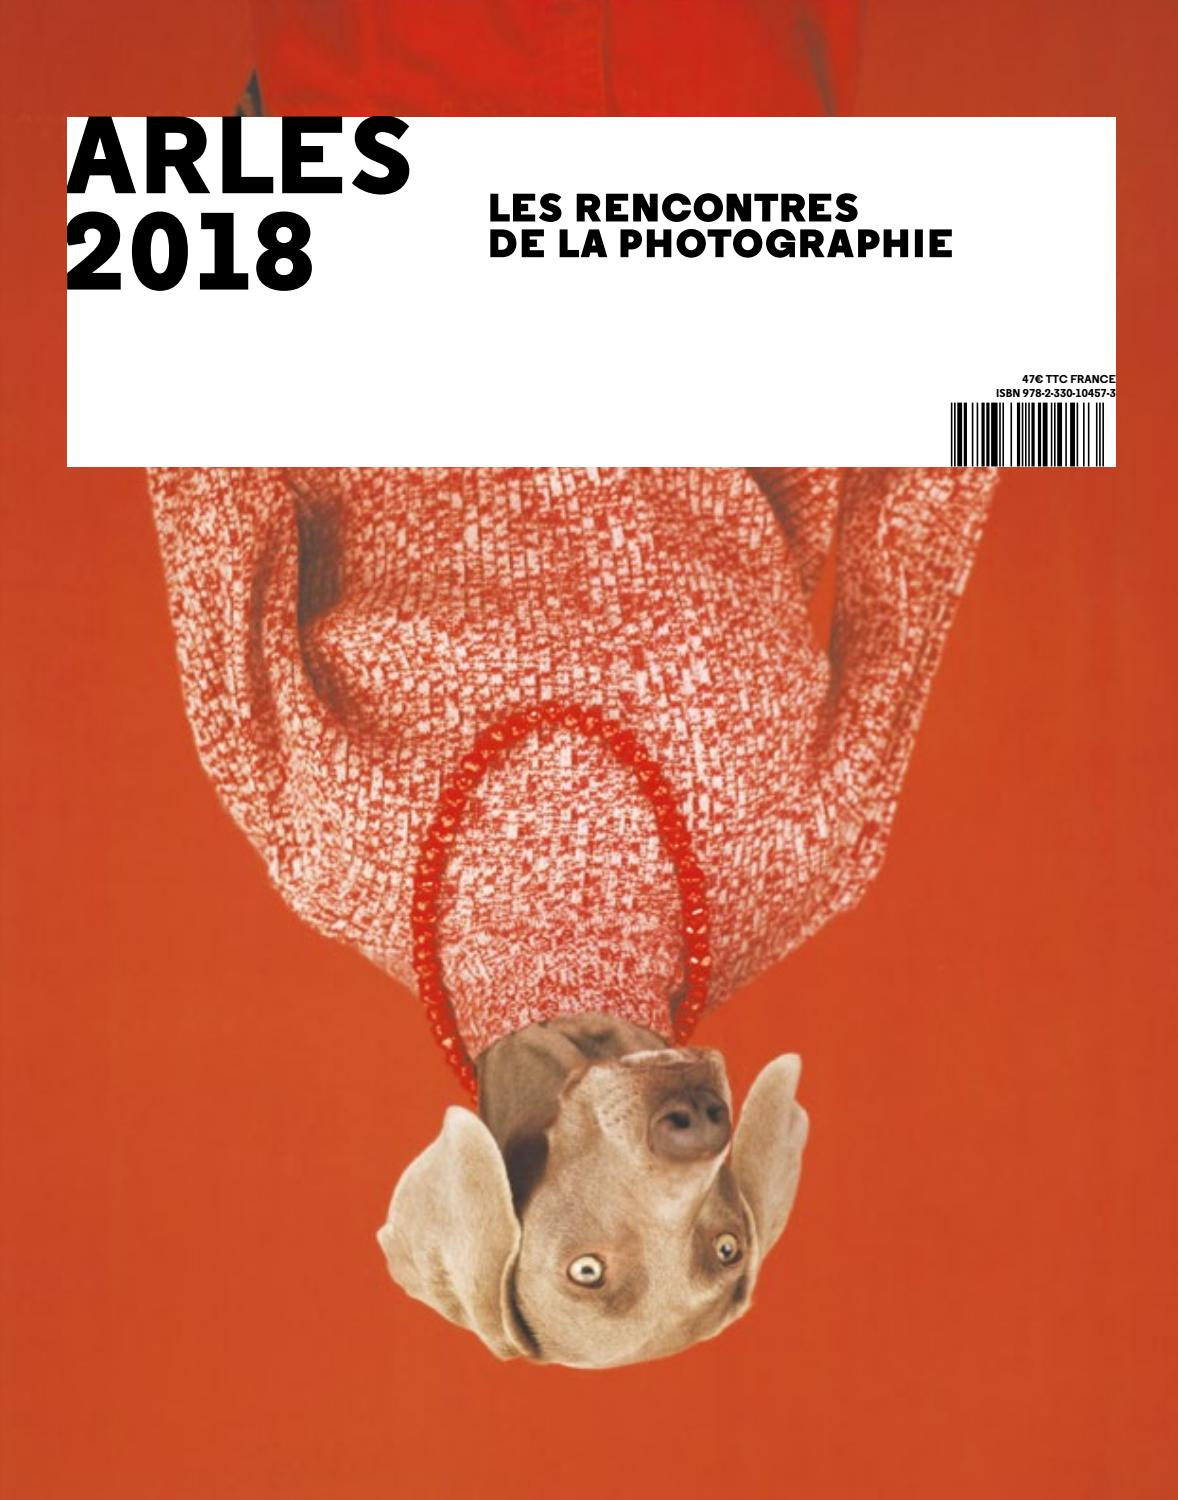 france culture rencontres darles 2019